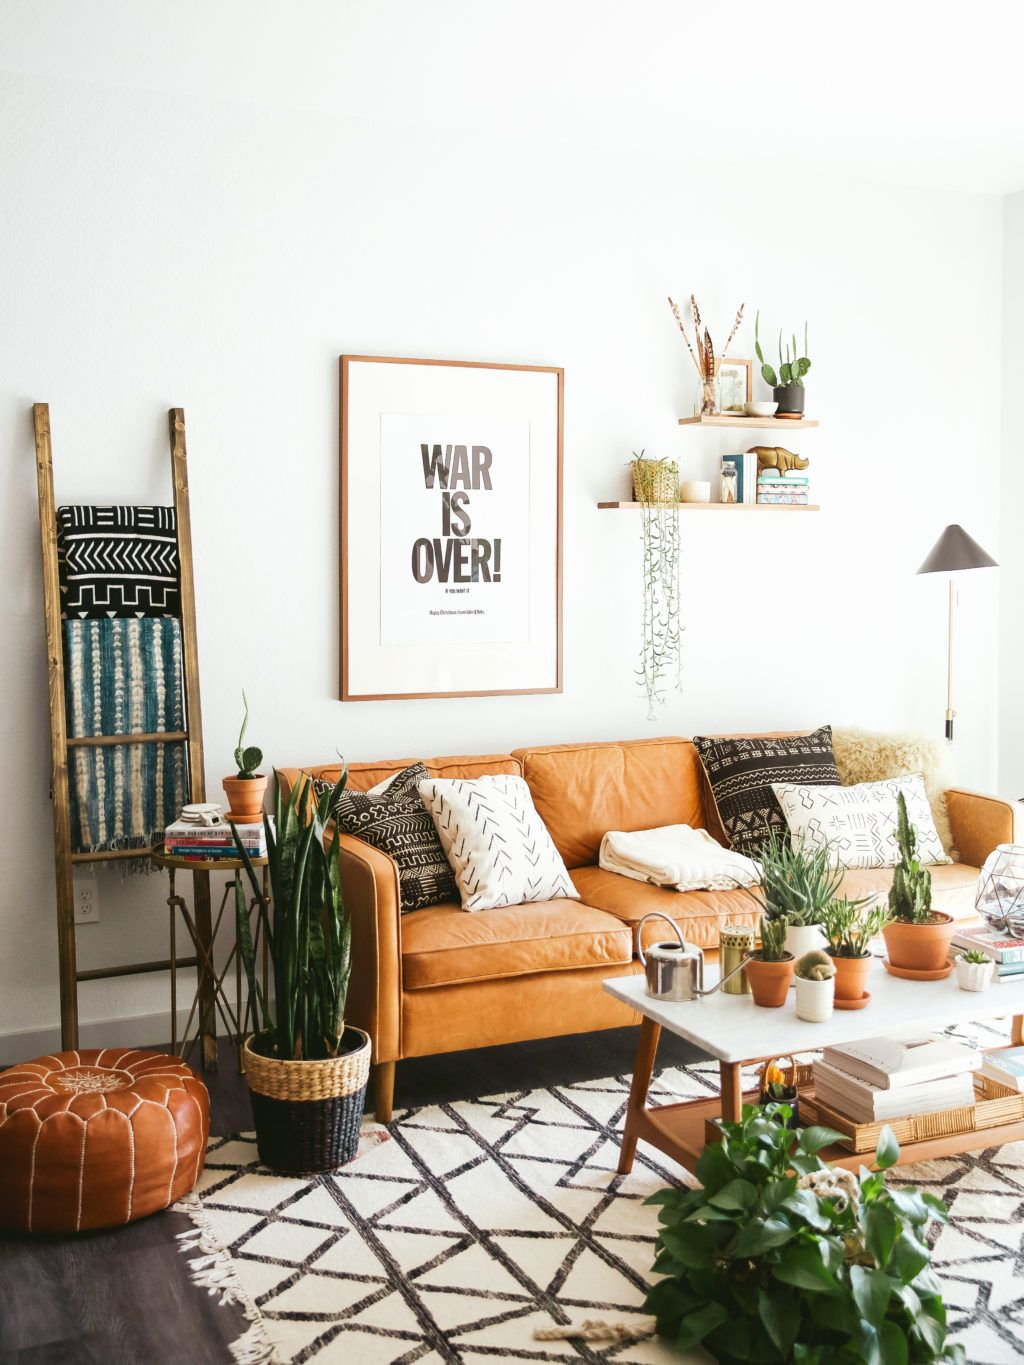 Pouf In Living Room White Table Set Weekend Links 08 Eclectic Decor Moroccan From Hesby New Darlings Lots Of Plants Indoor Jungle Leather Couch